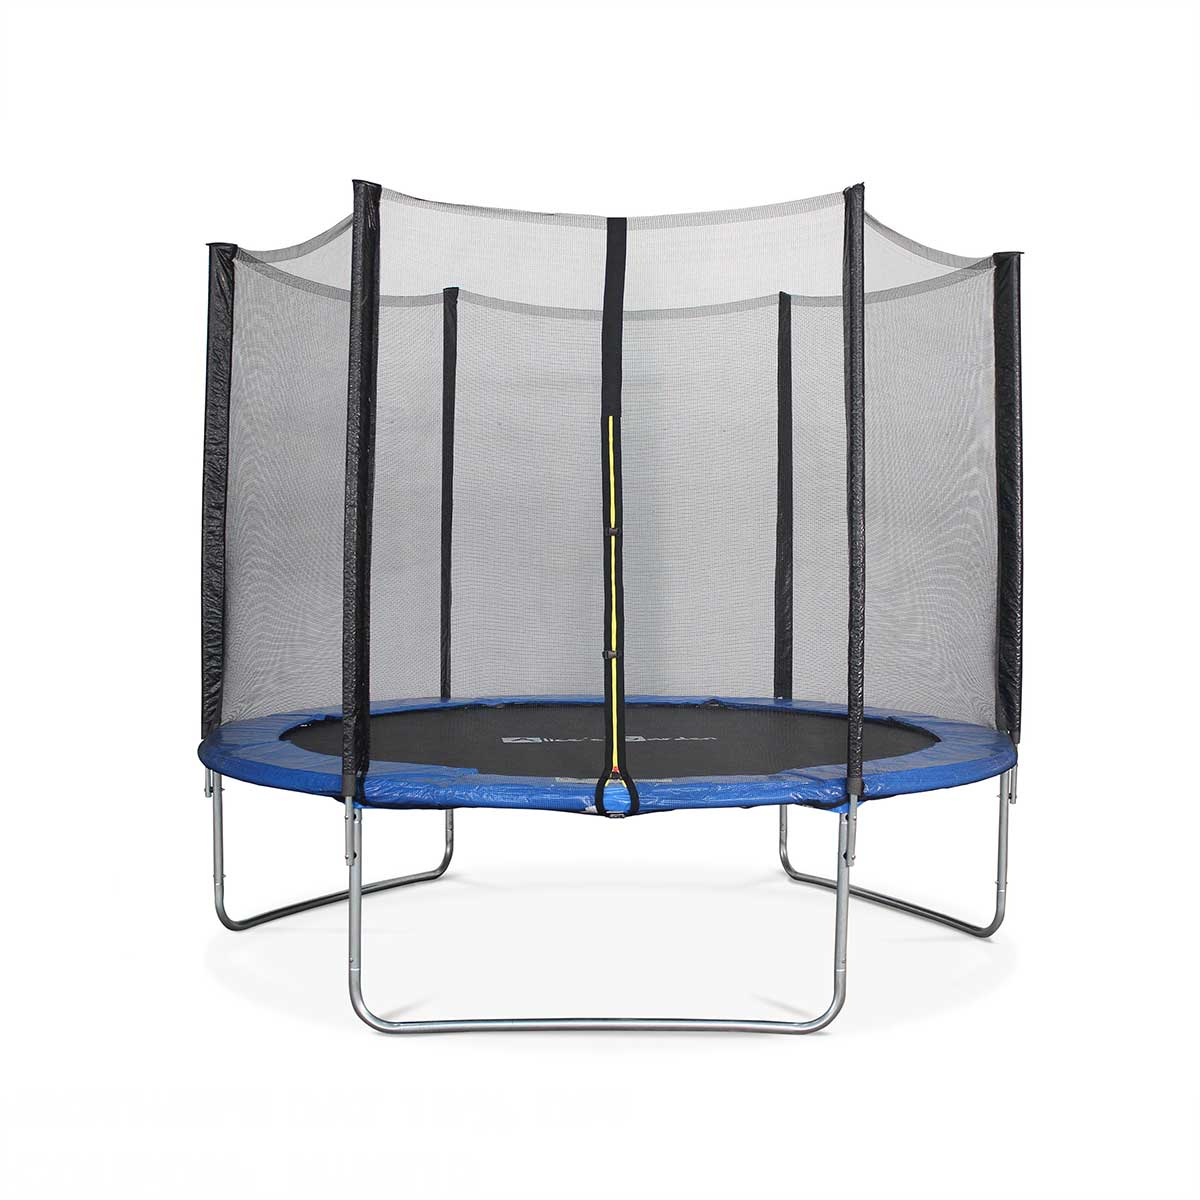 Trampoline Sale Australia Trampoline 8 Ft With Safety Net Blue Or Grey Alice 39s